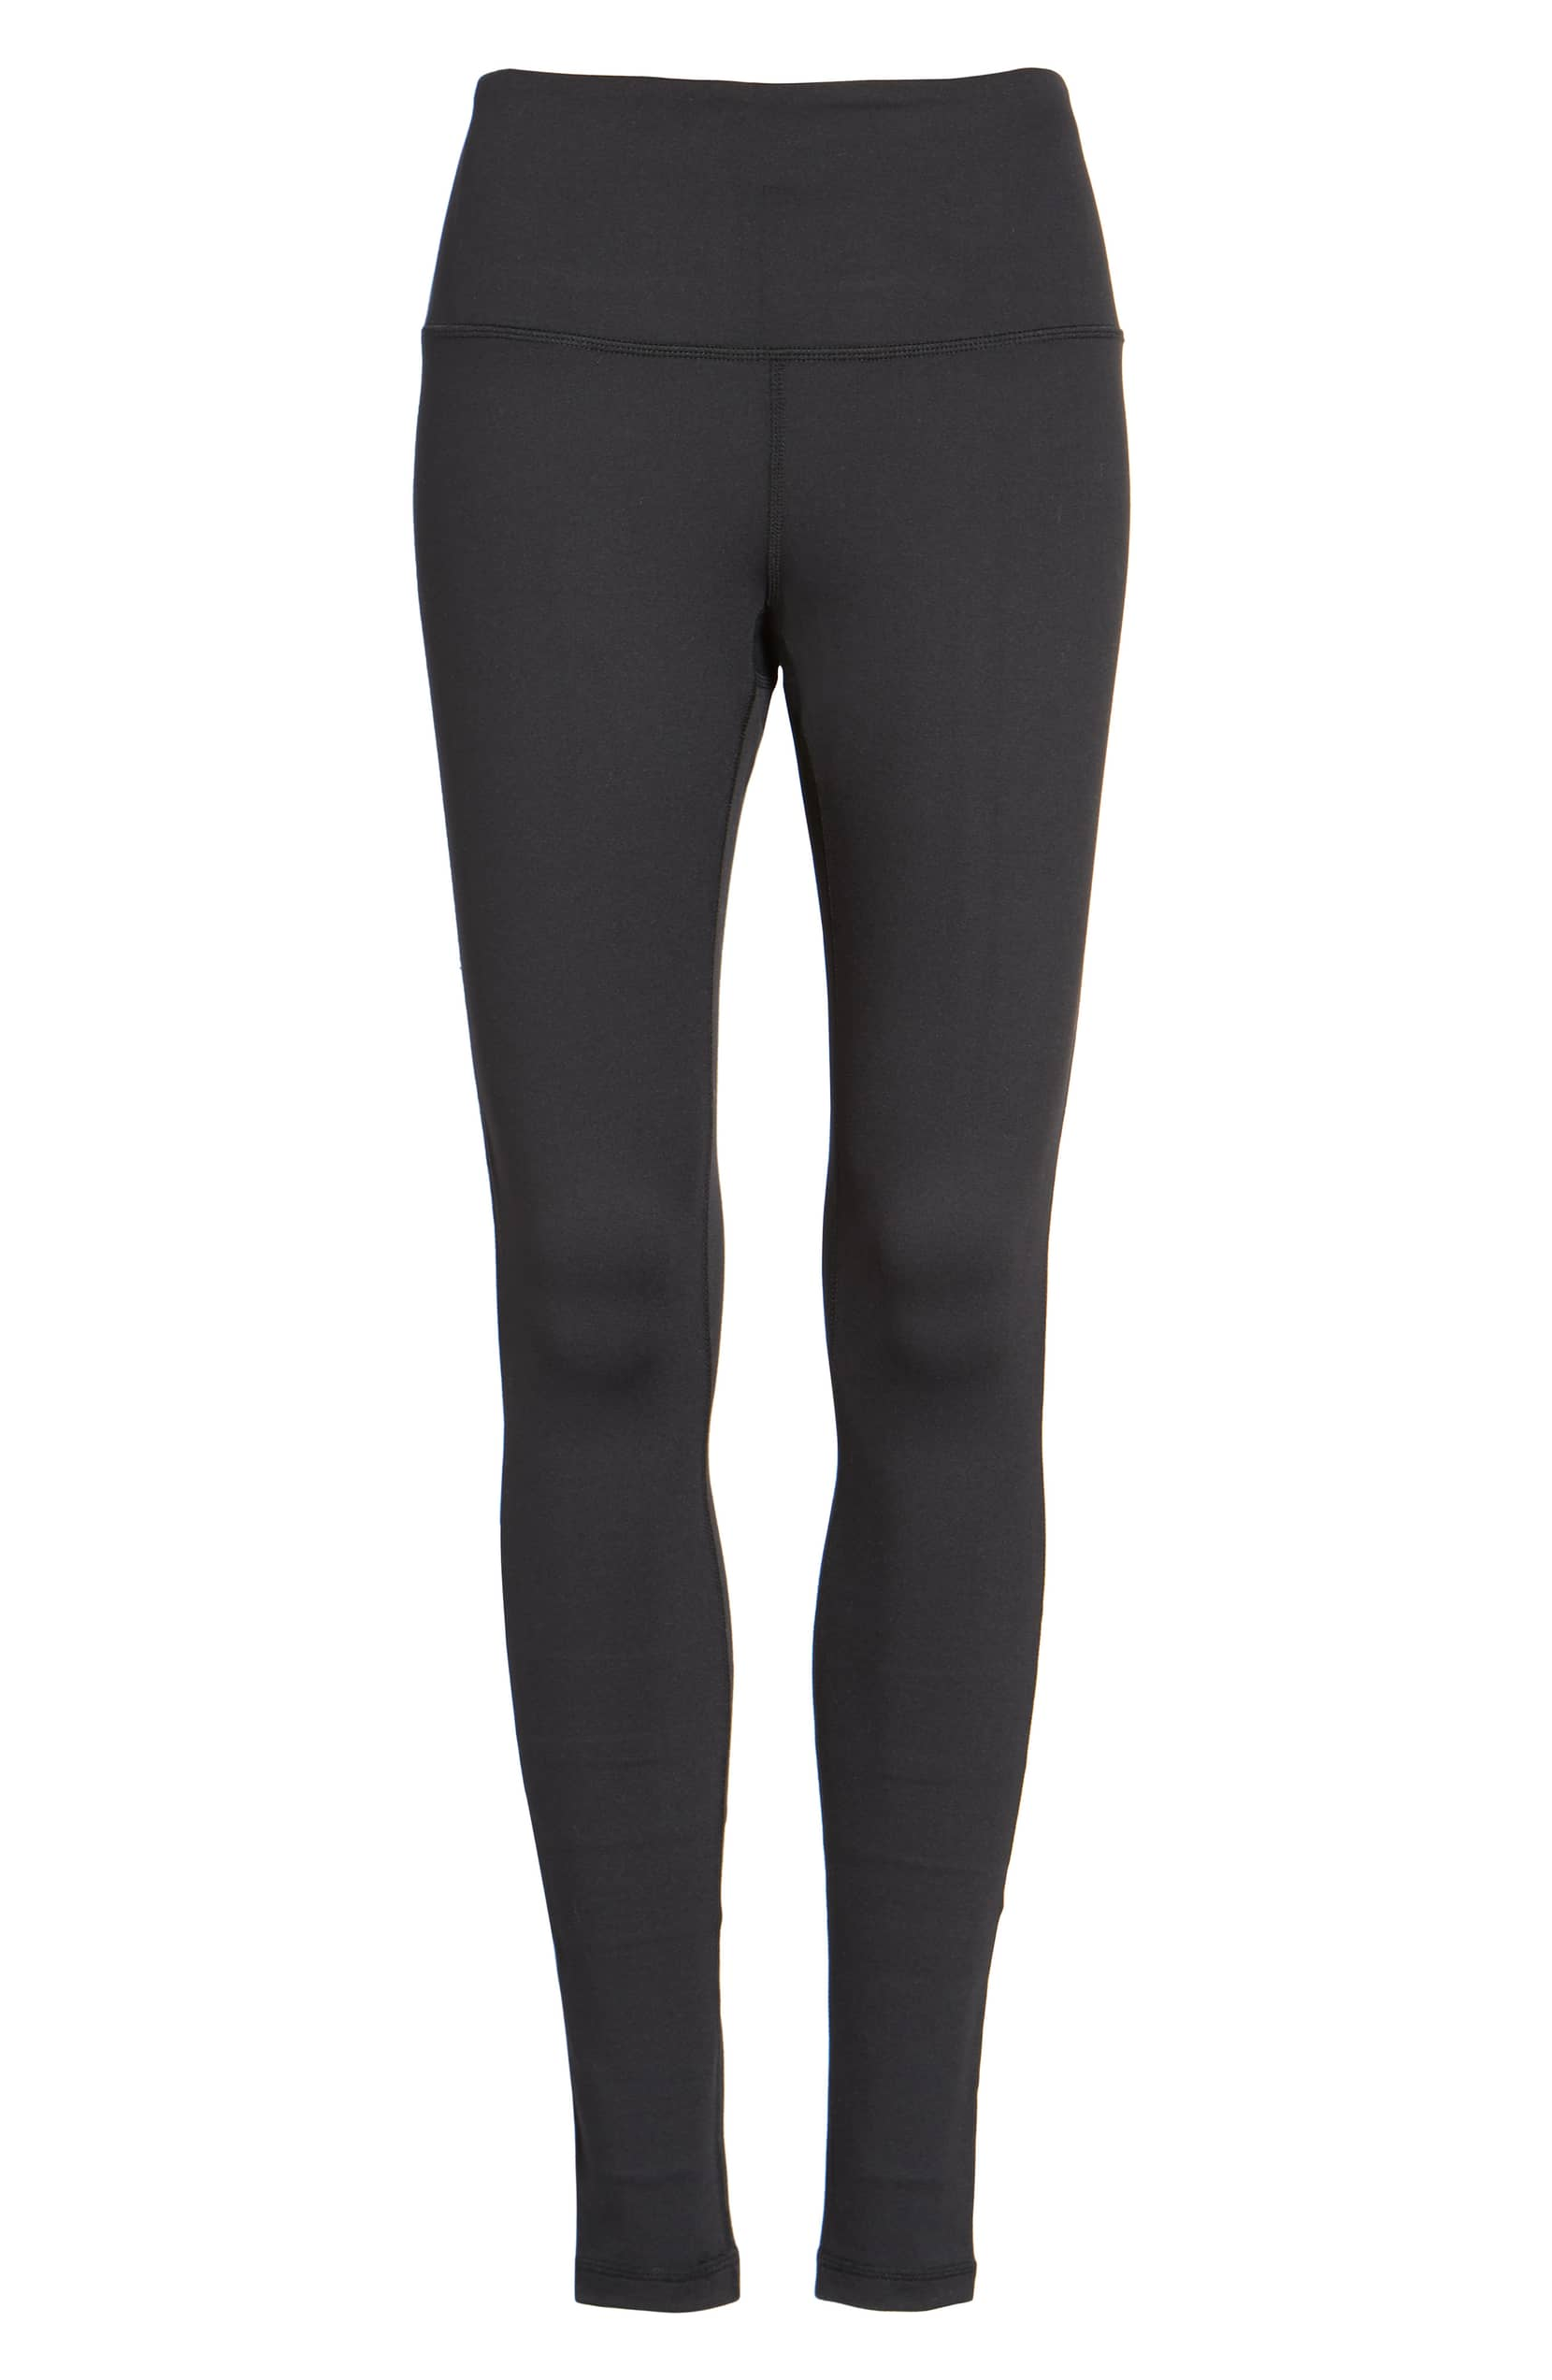 af626604637 Best Black Leggings - Reviews On Top Brands   Styles